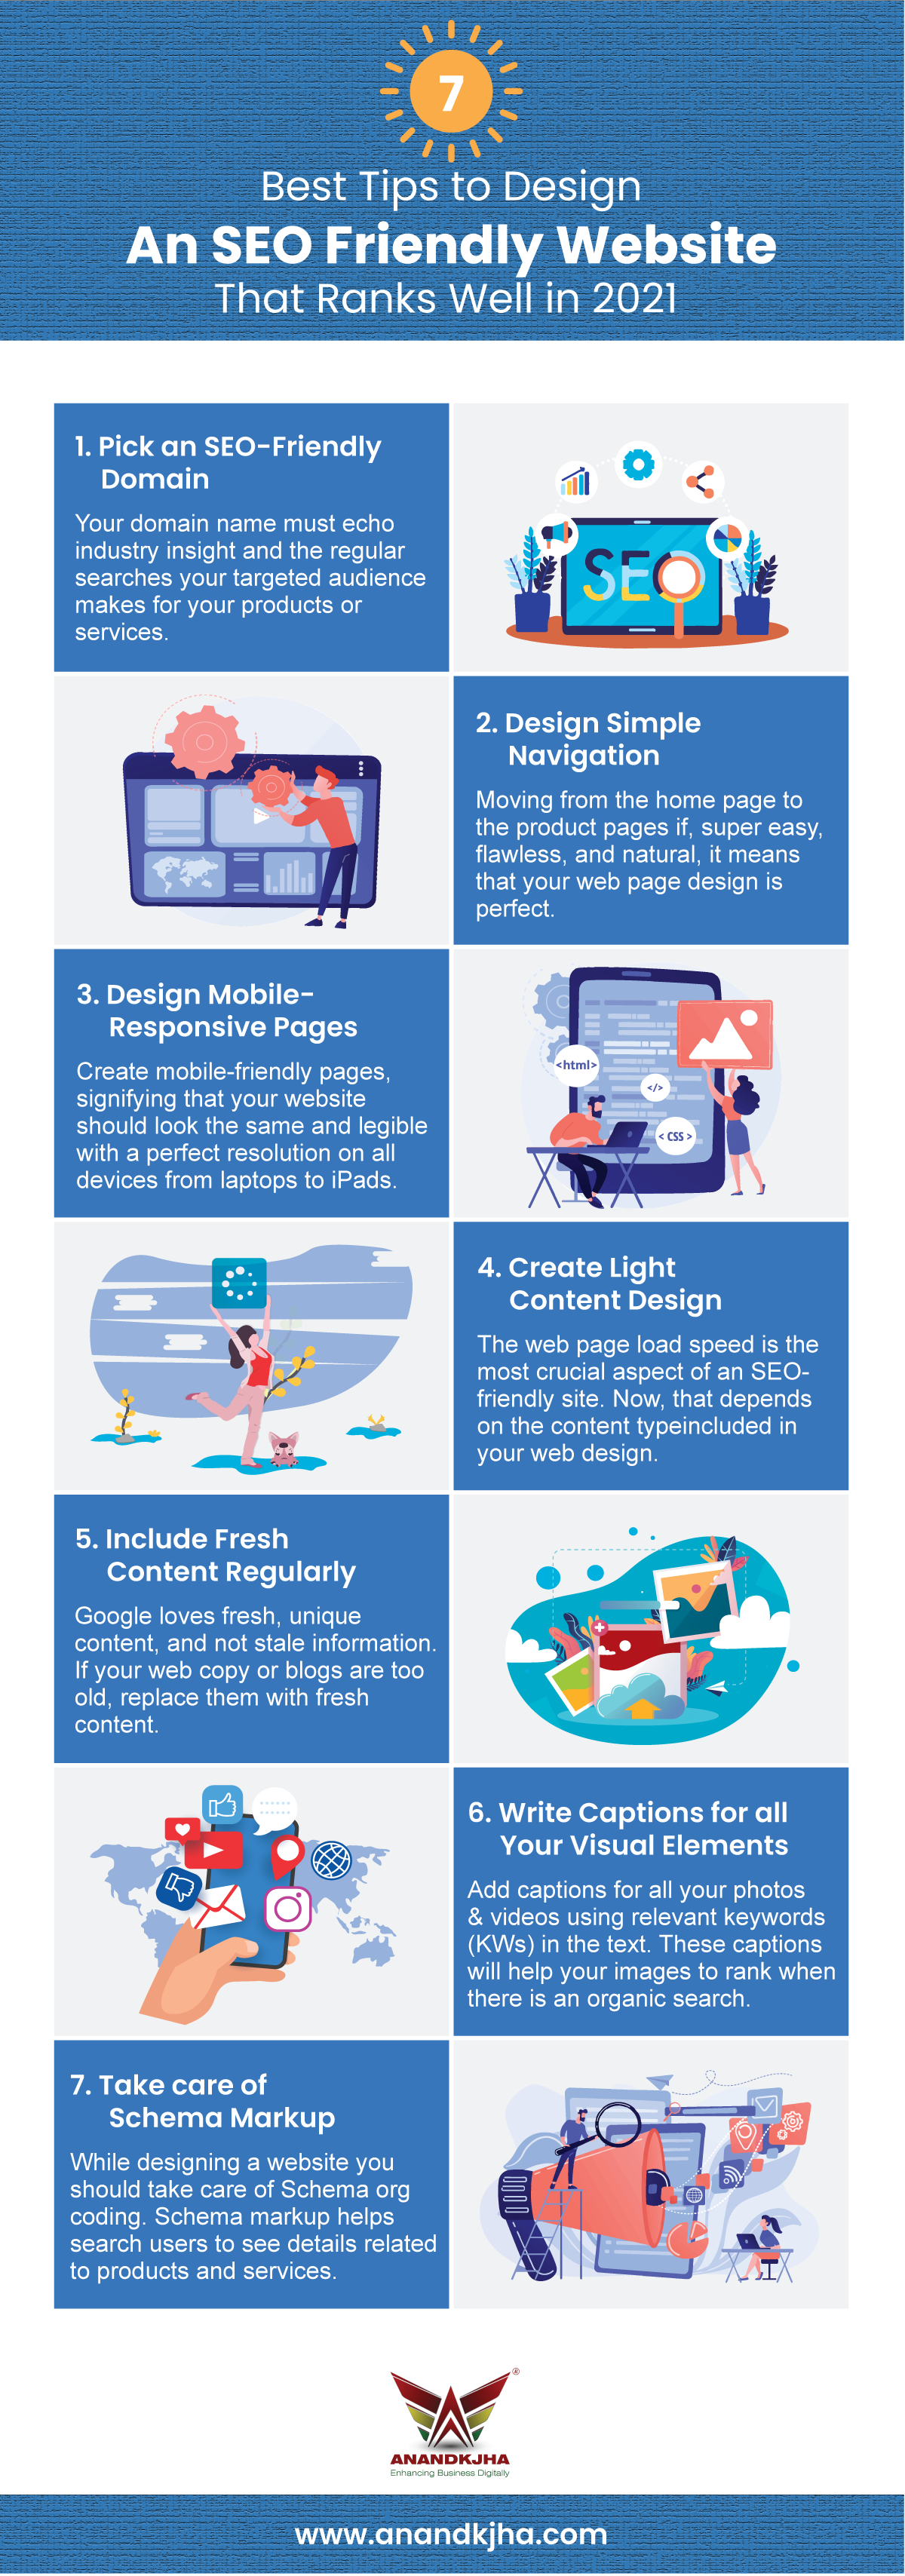 7 best tips to design an SEO friendly website that ranks well